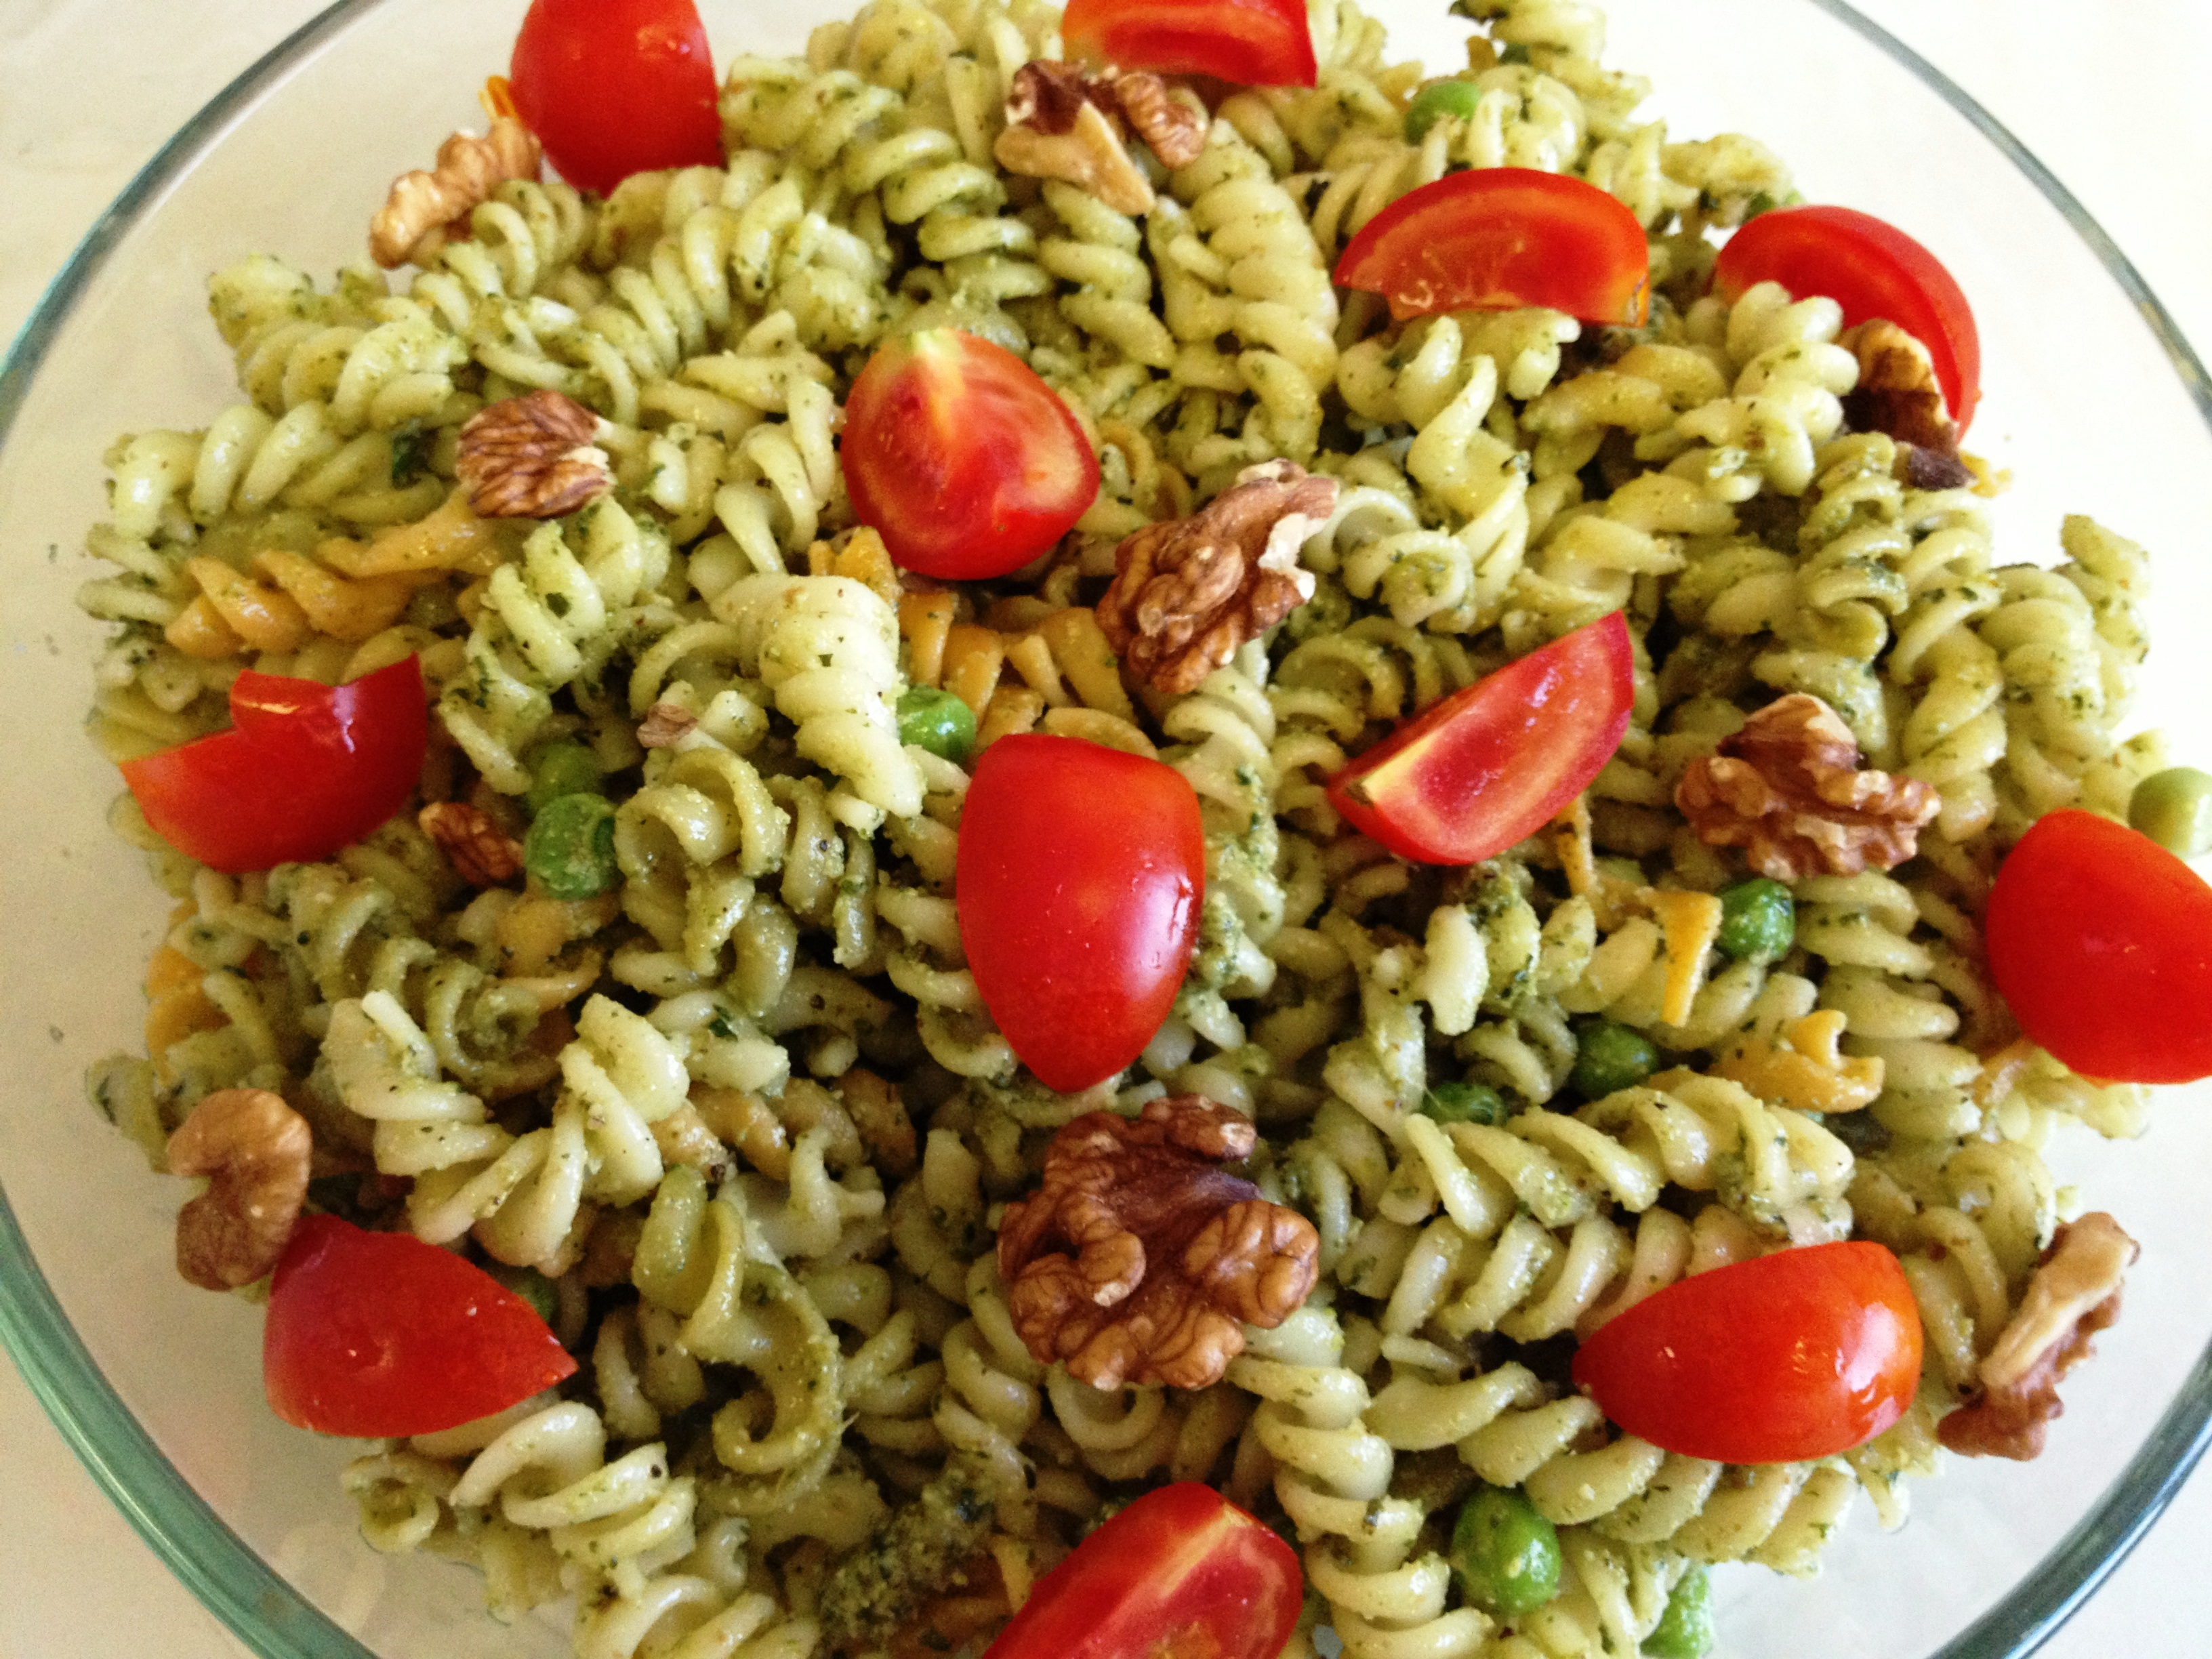 Walnut Pesto Pasta Salad | easy cooking n' baking